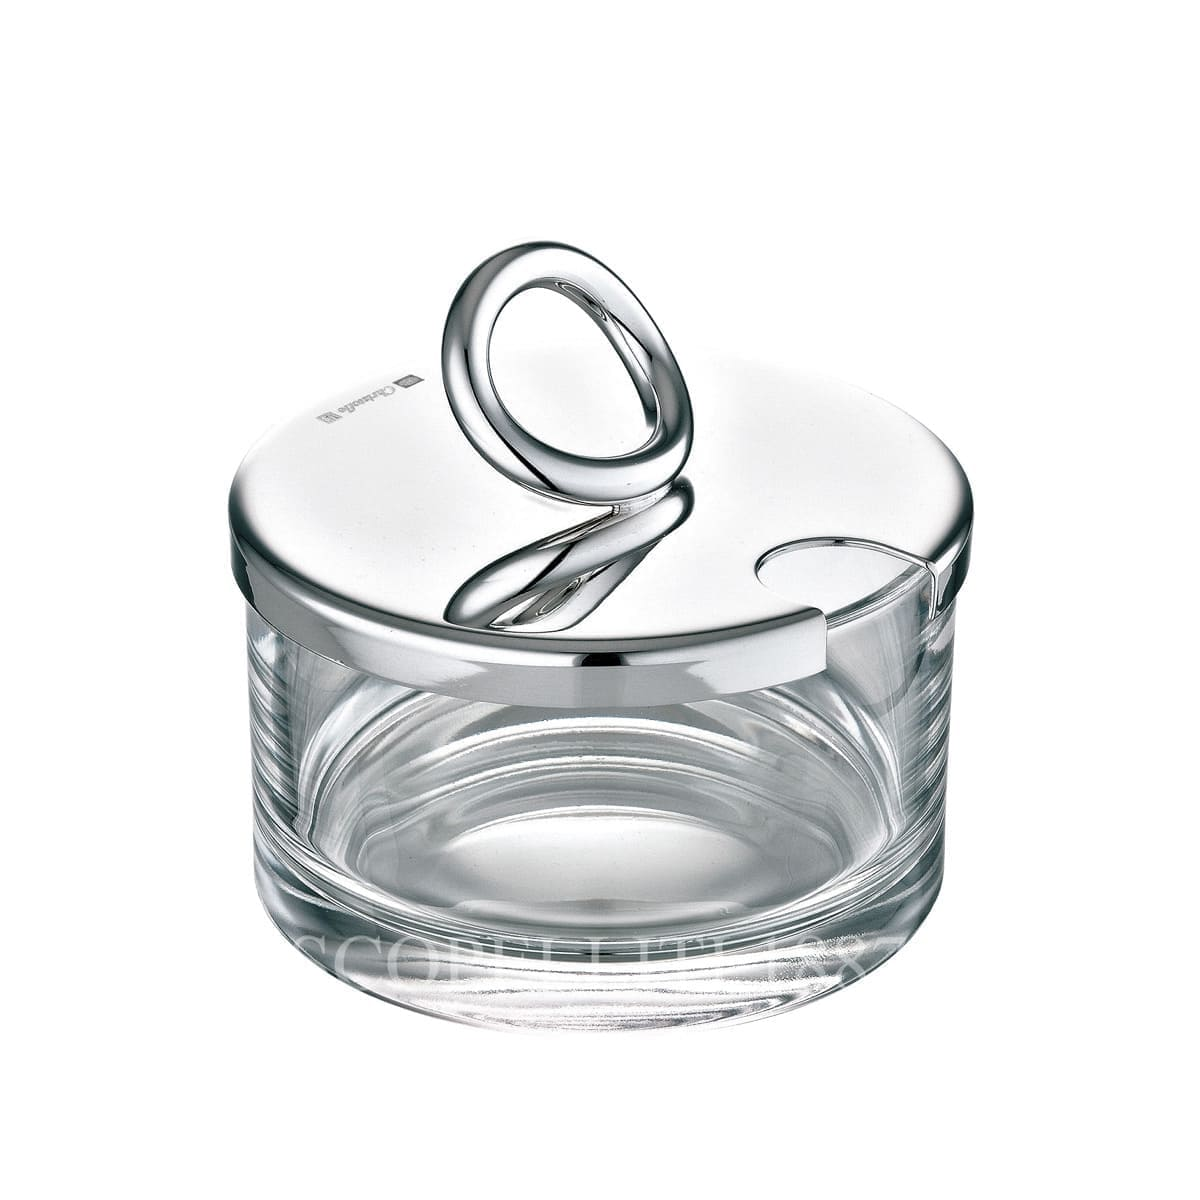 christofle silver plated vertigo cheese dish